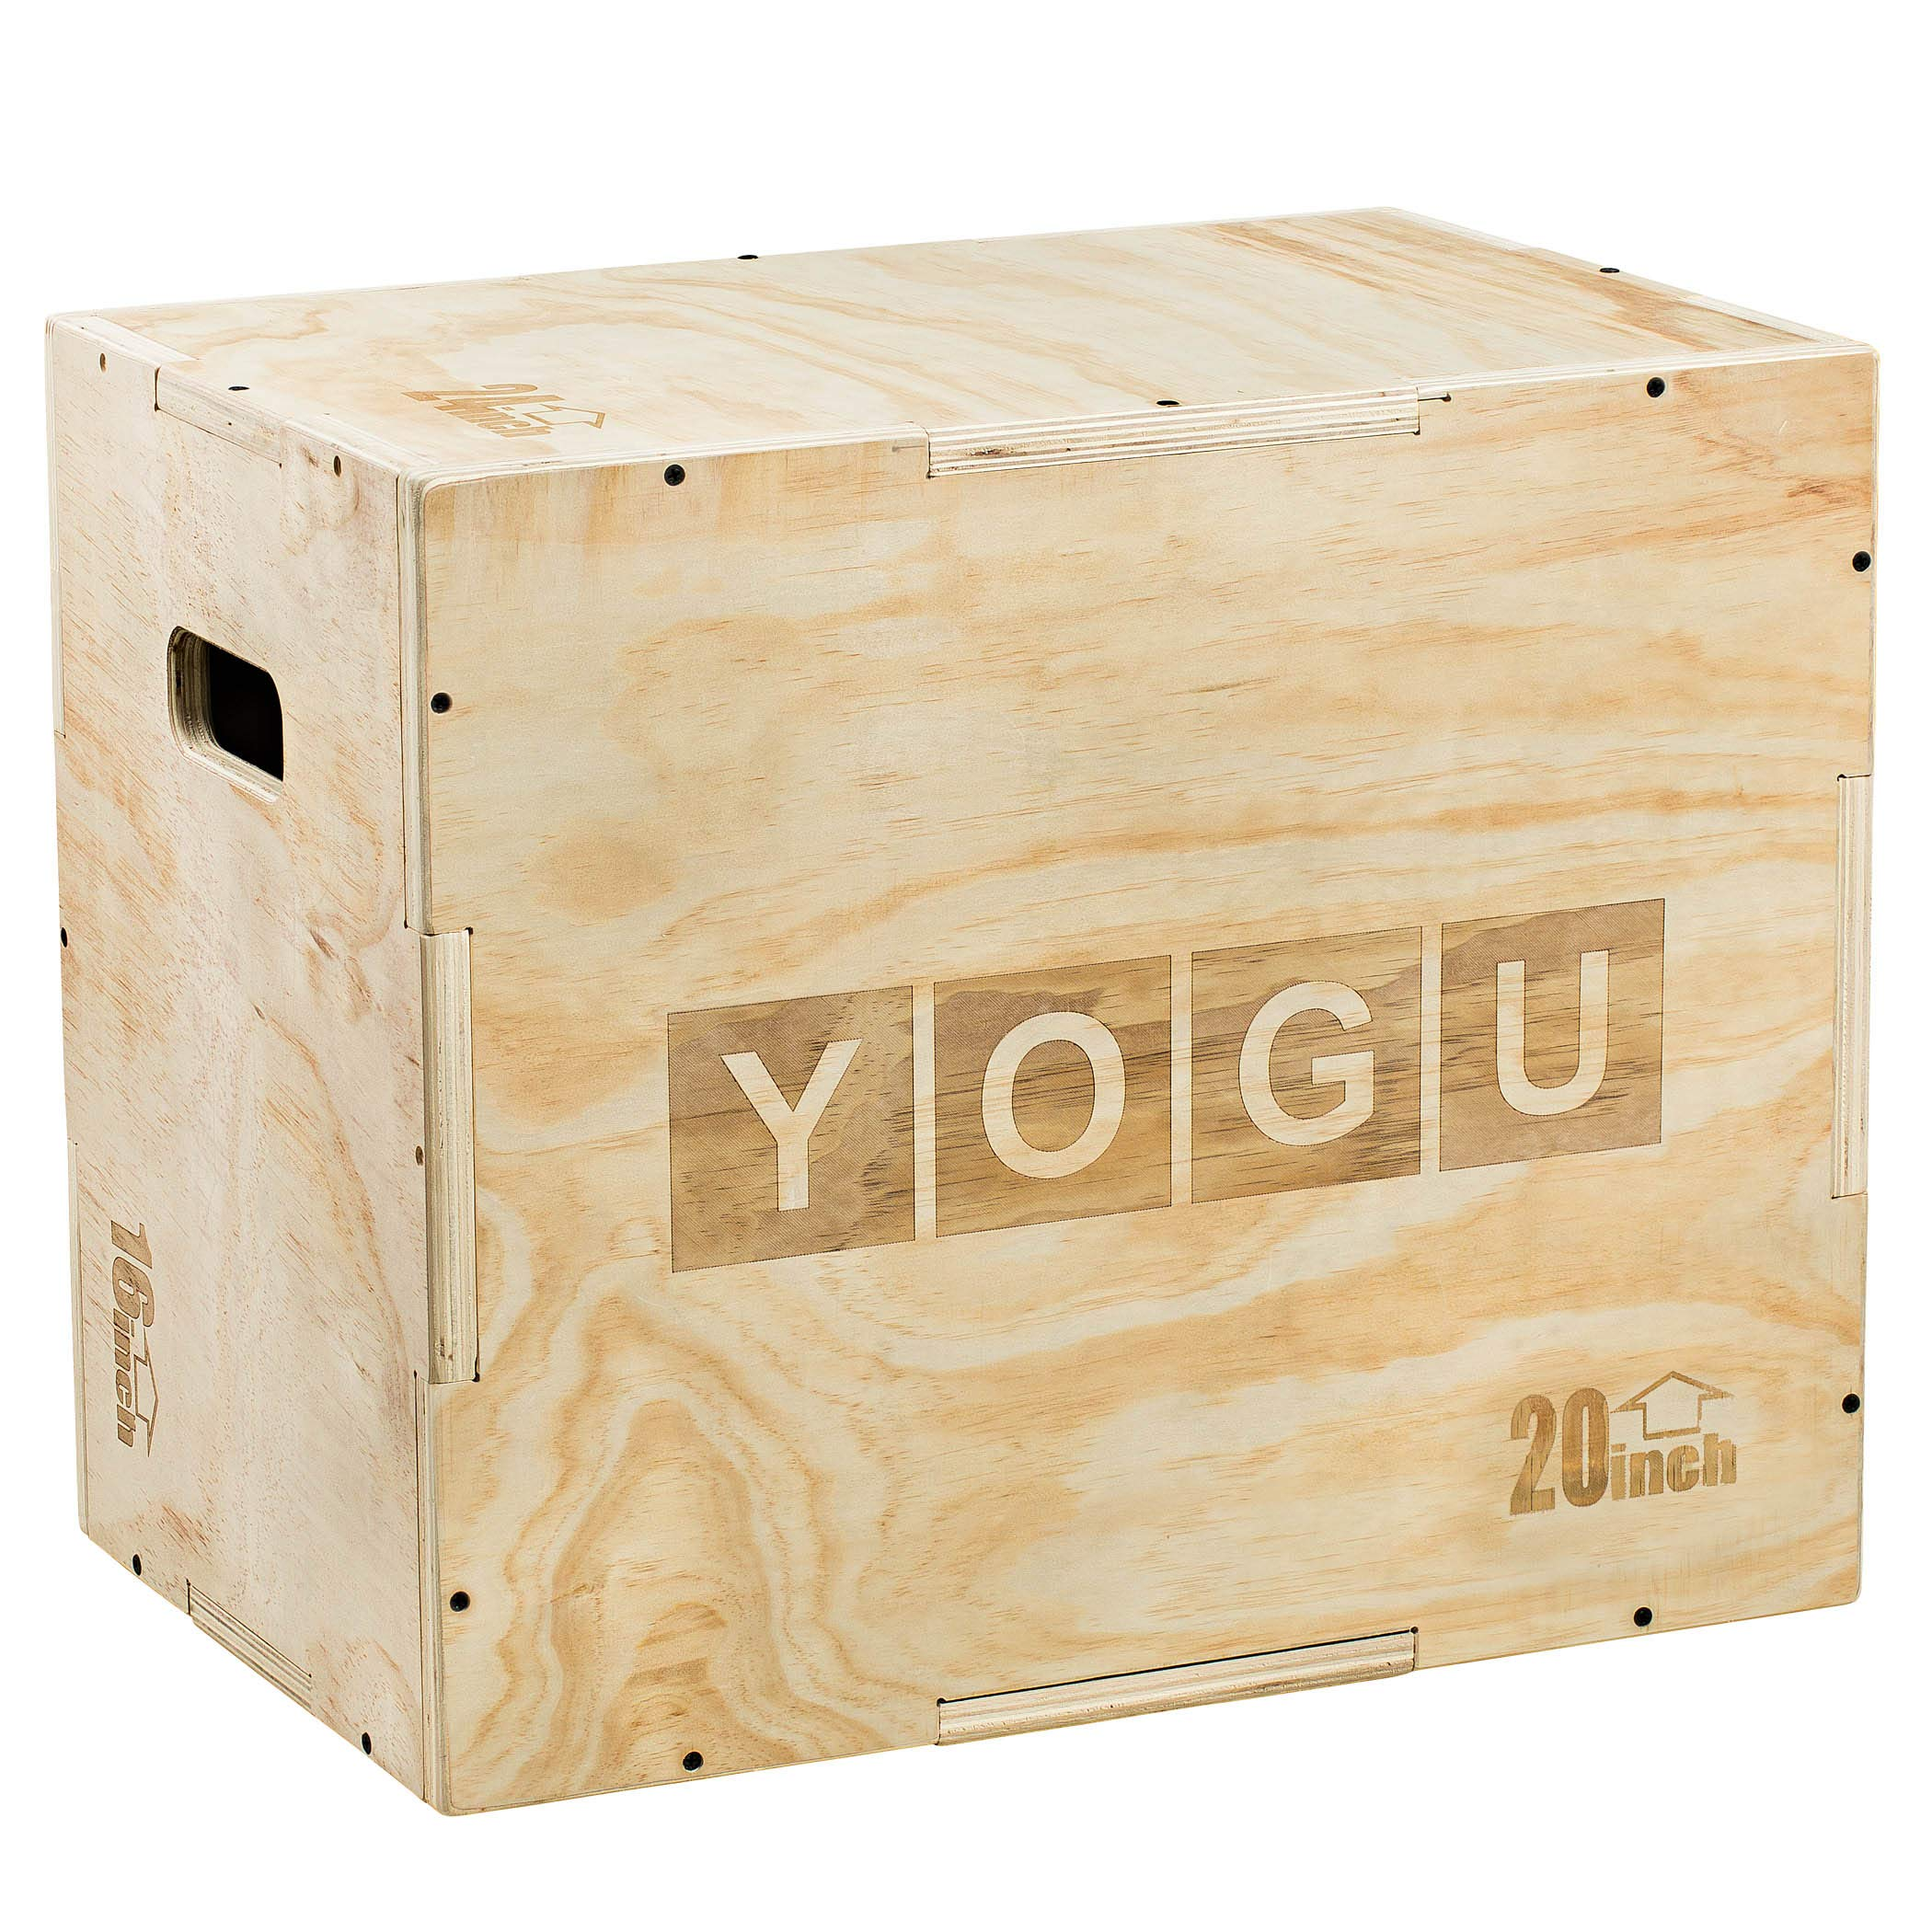 YOGU 3 in 1 Wood Plyometric Box (24/20/16)